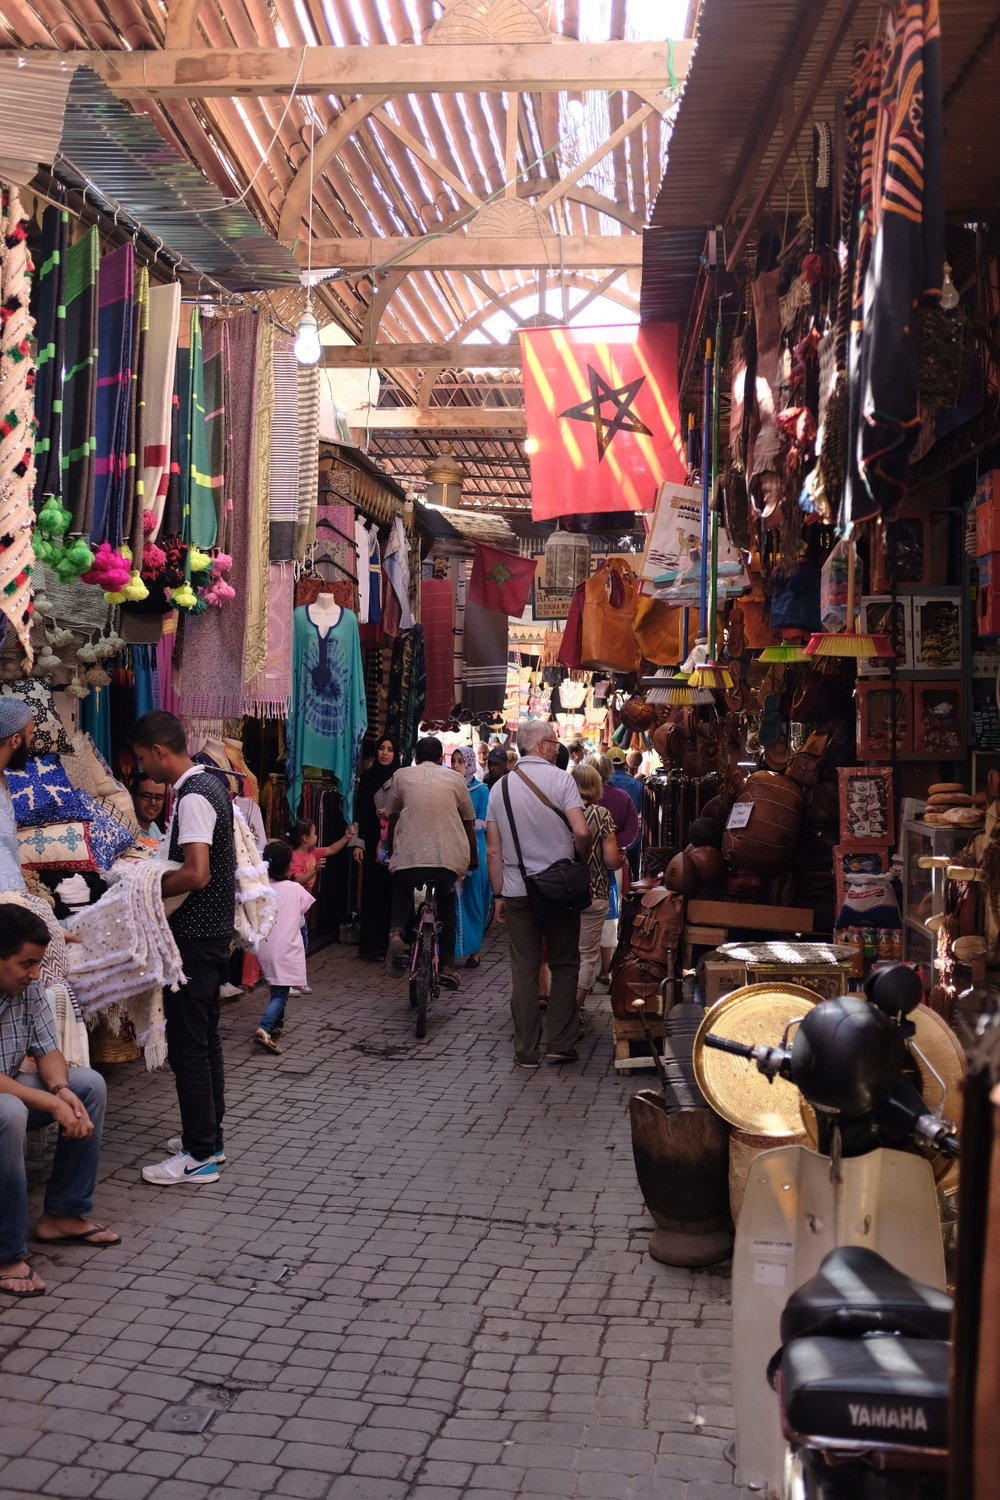 Marketplace in Fes